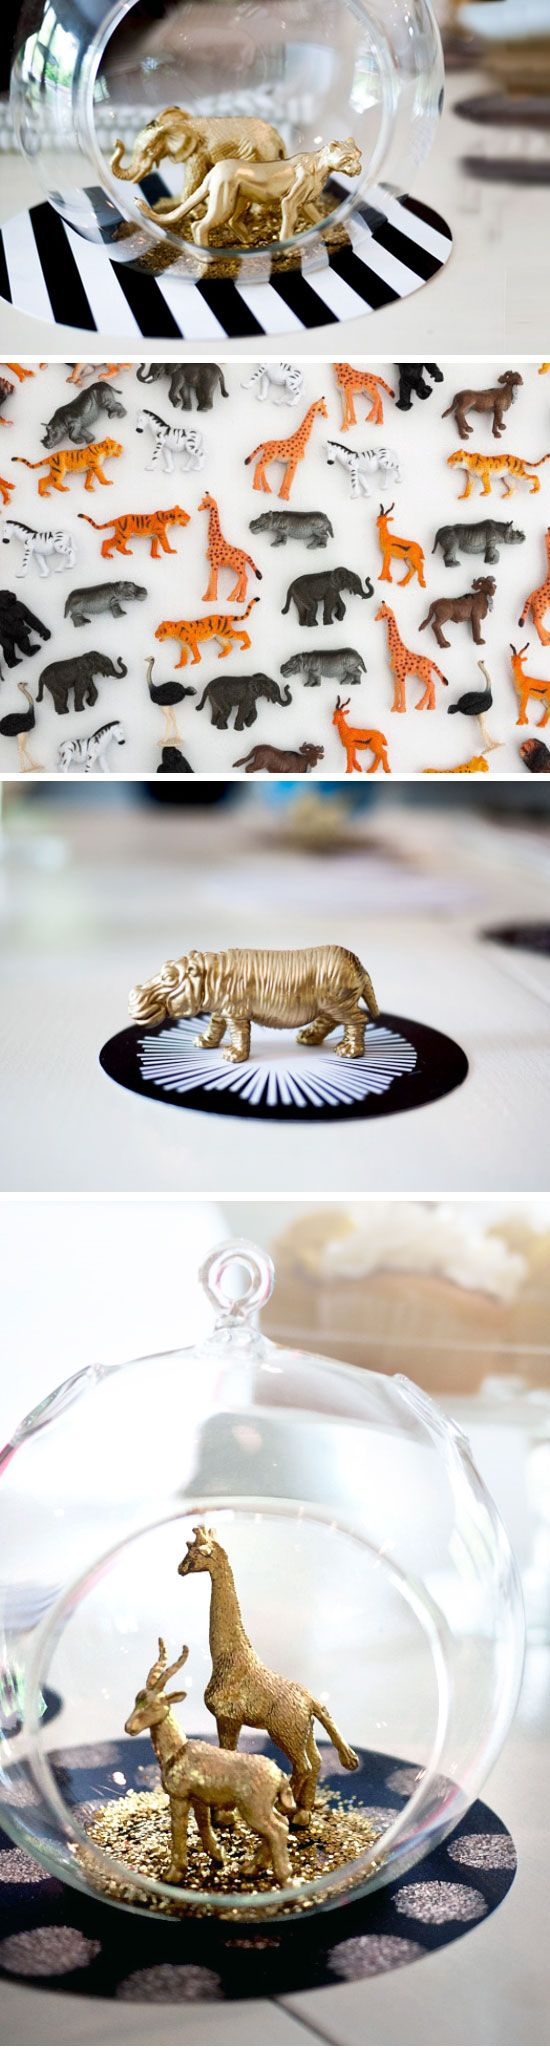 Diy gold toy animal globes click pick for 23 last minute new years eve party ideas fun new - Last minute new year s eve party ideas ...